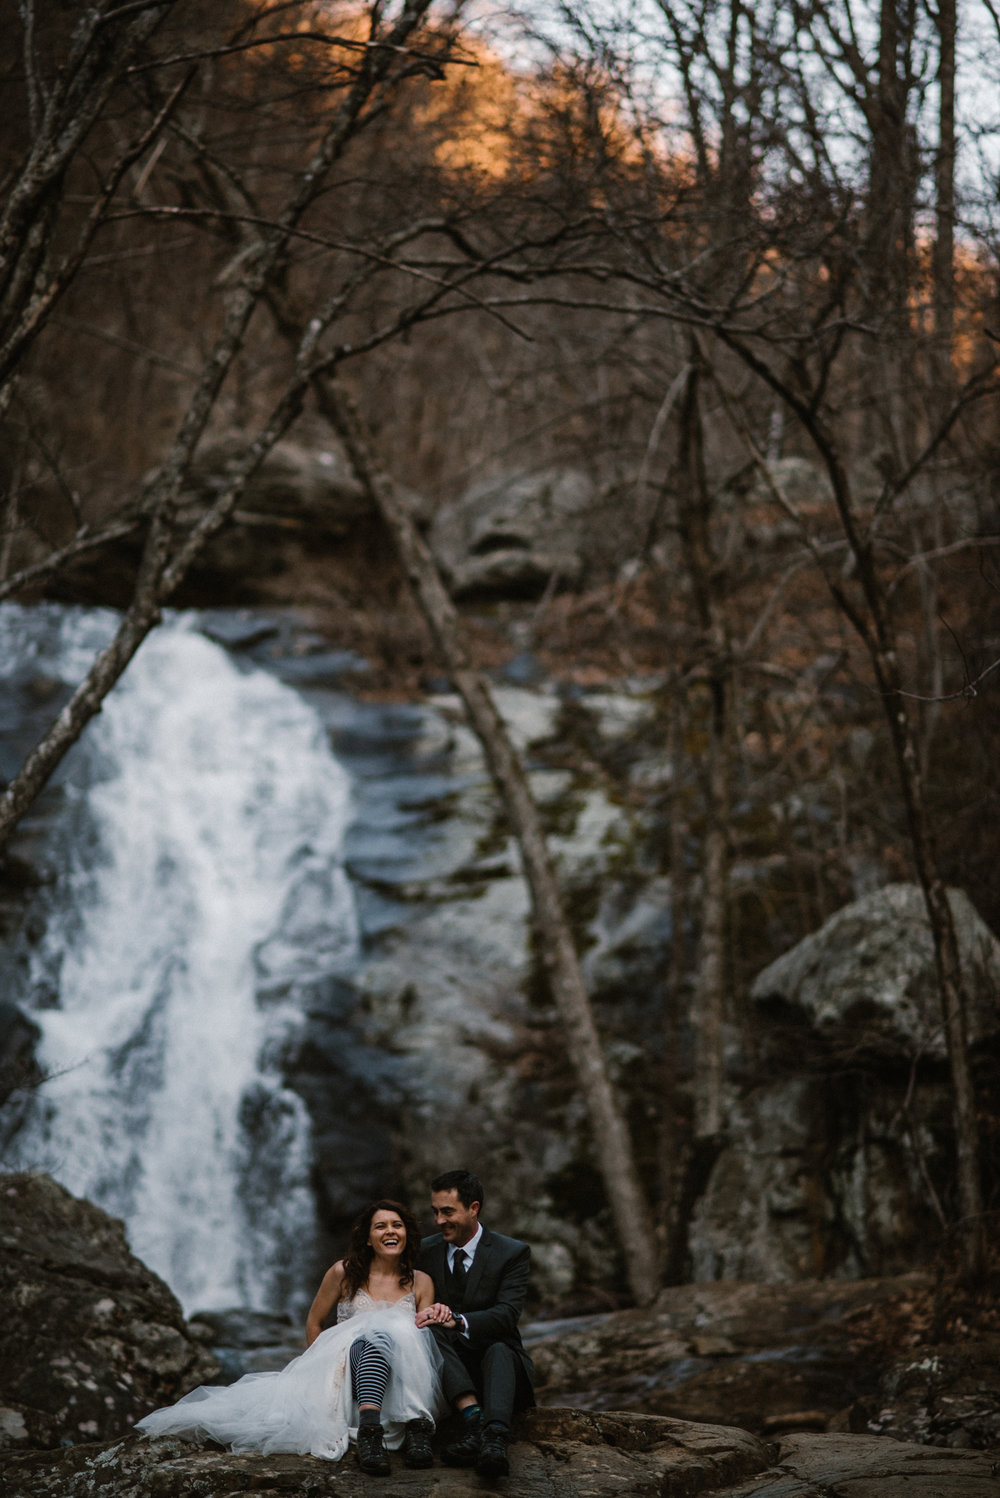 Stephanie and Steve - Shenandoah National Park Elopement - Sunrise Hiking Elopement - Adventurous Elopement - Virginia Elopement Photographer - Shenandoah national Park Wedding Photographer - White Sails Creative_15.jpg